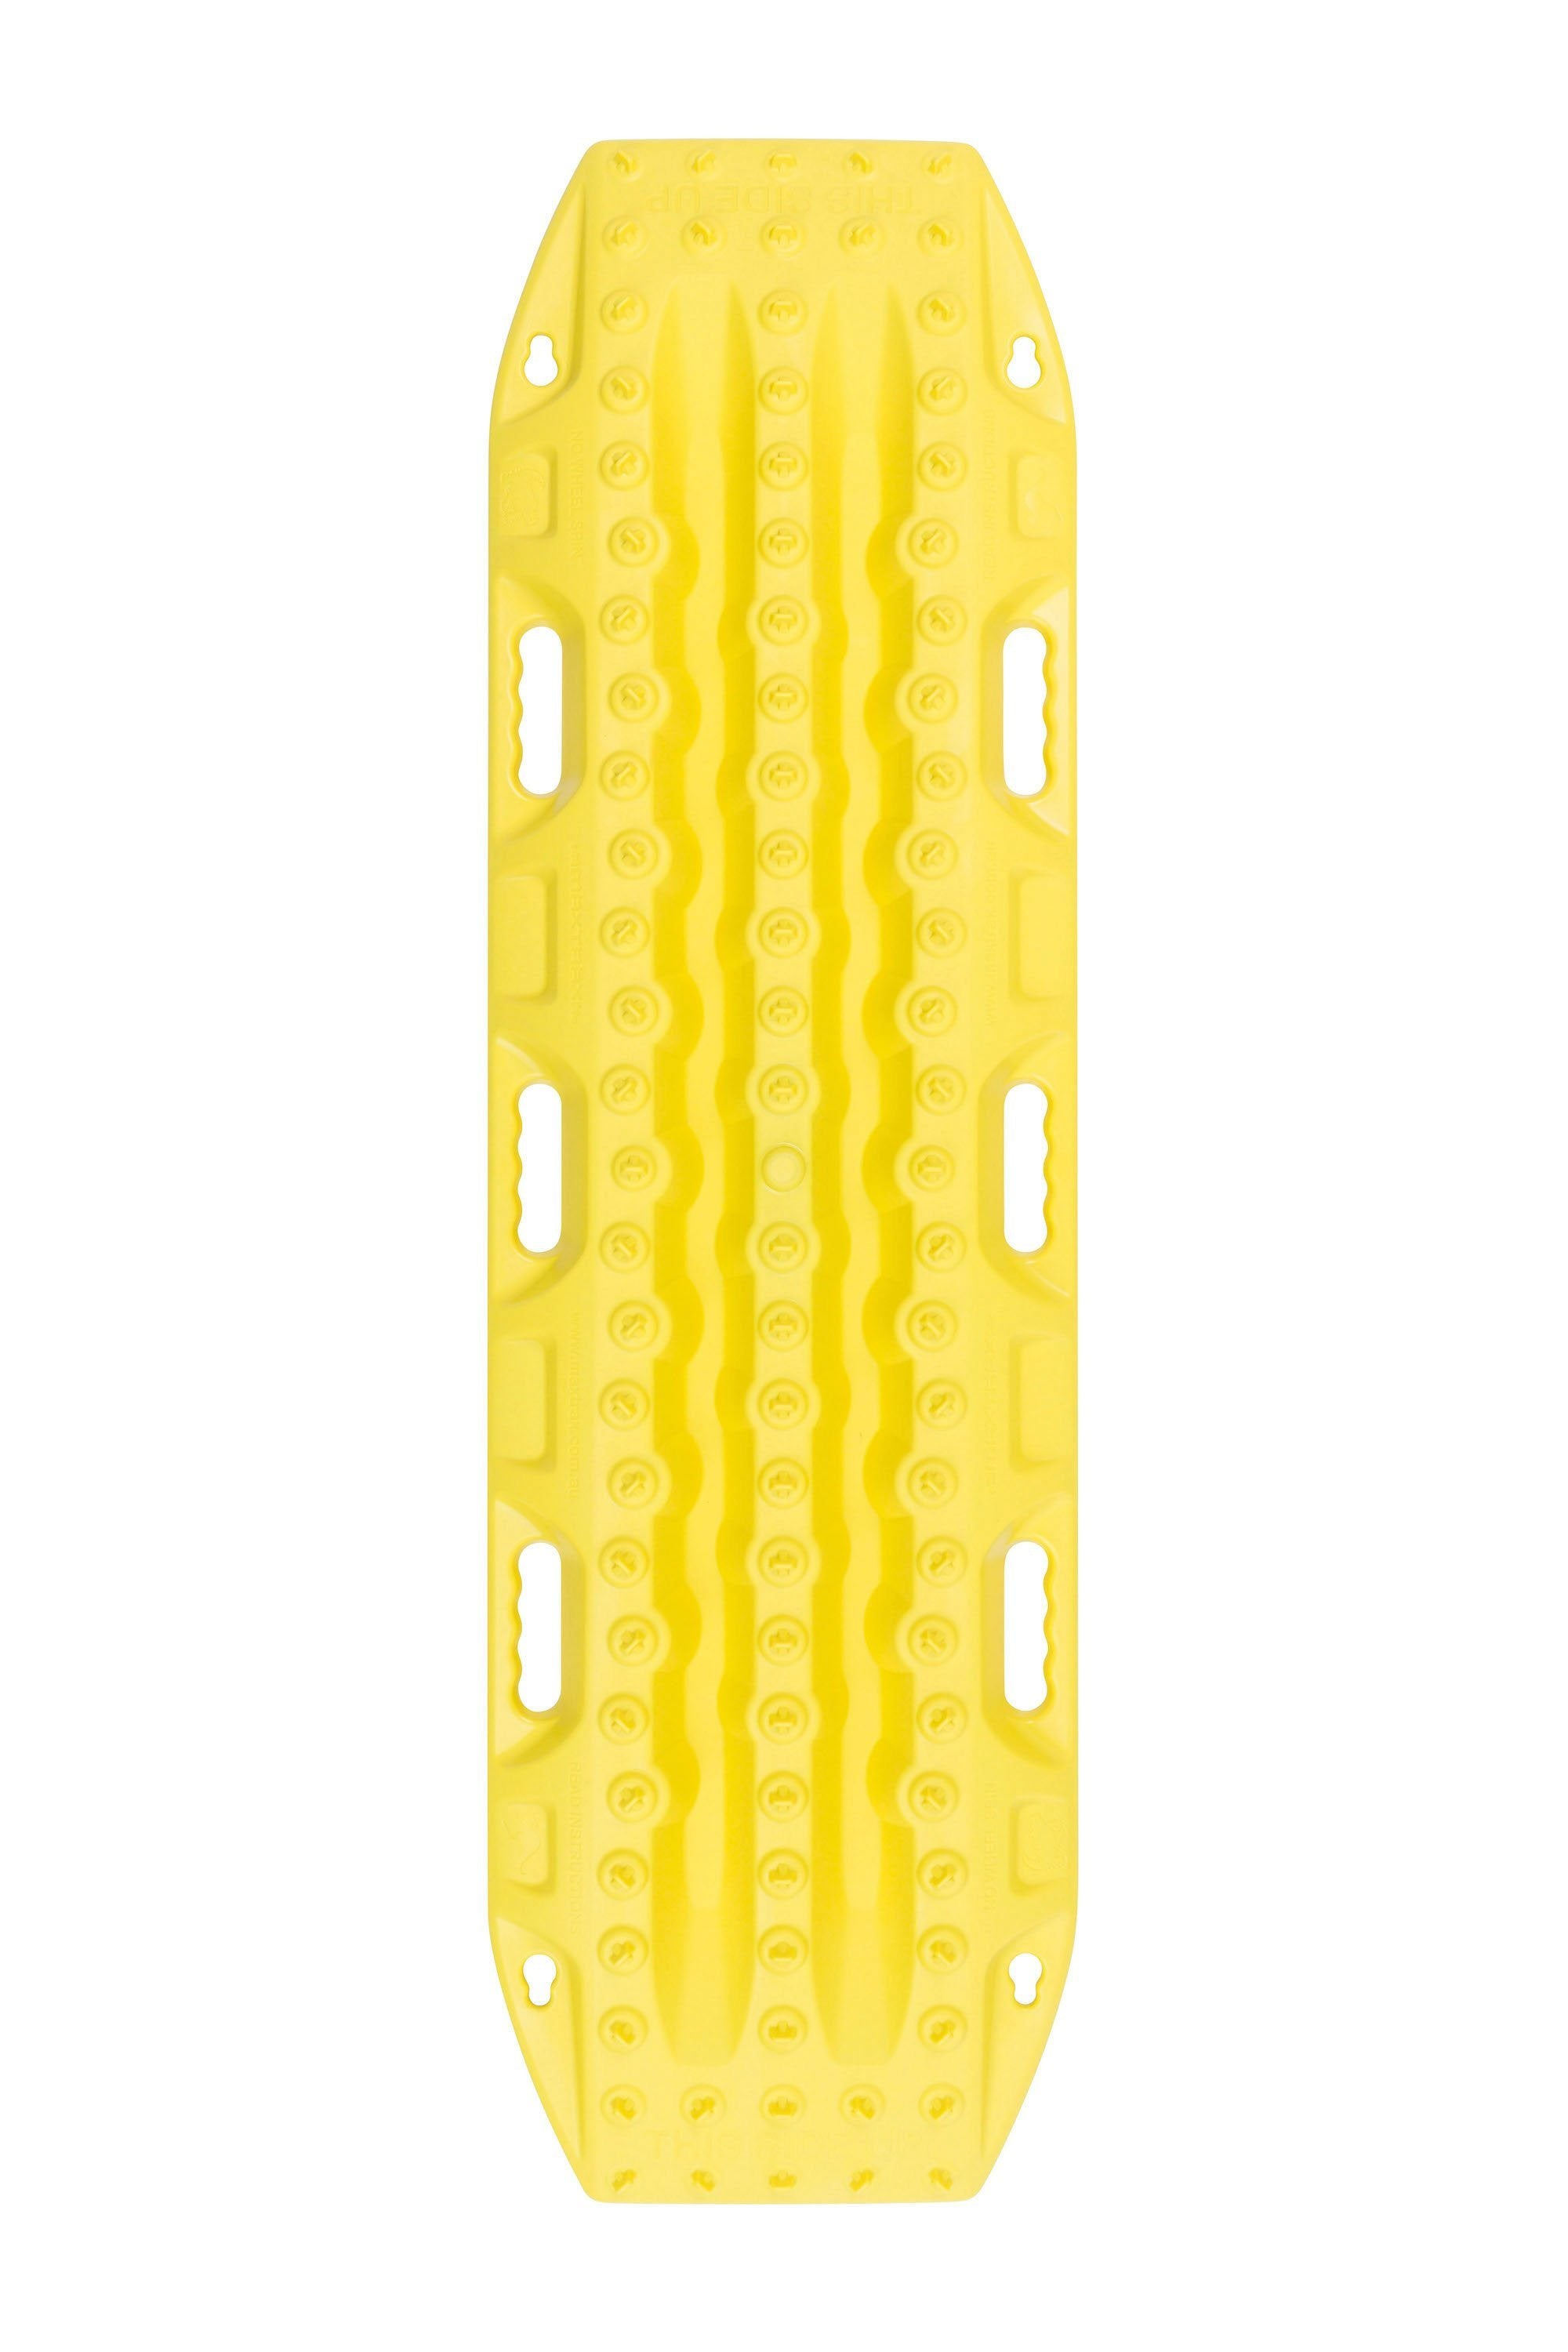 MAXTRAX MKII Blaze Yellow Recovery Boards  Recovery Gear MAXTRAX- Adventure Imports